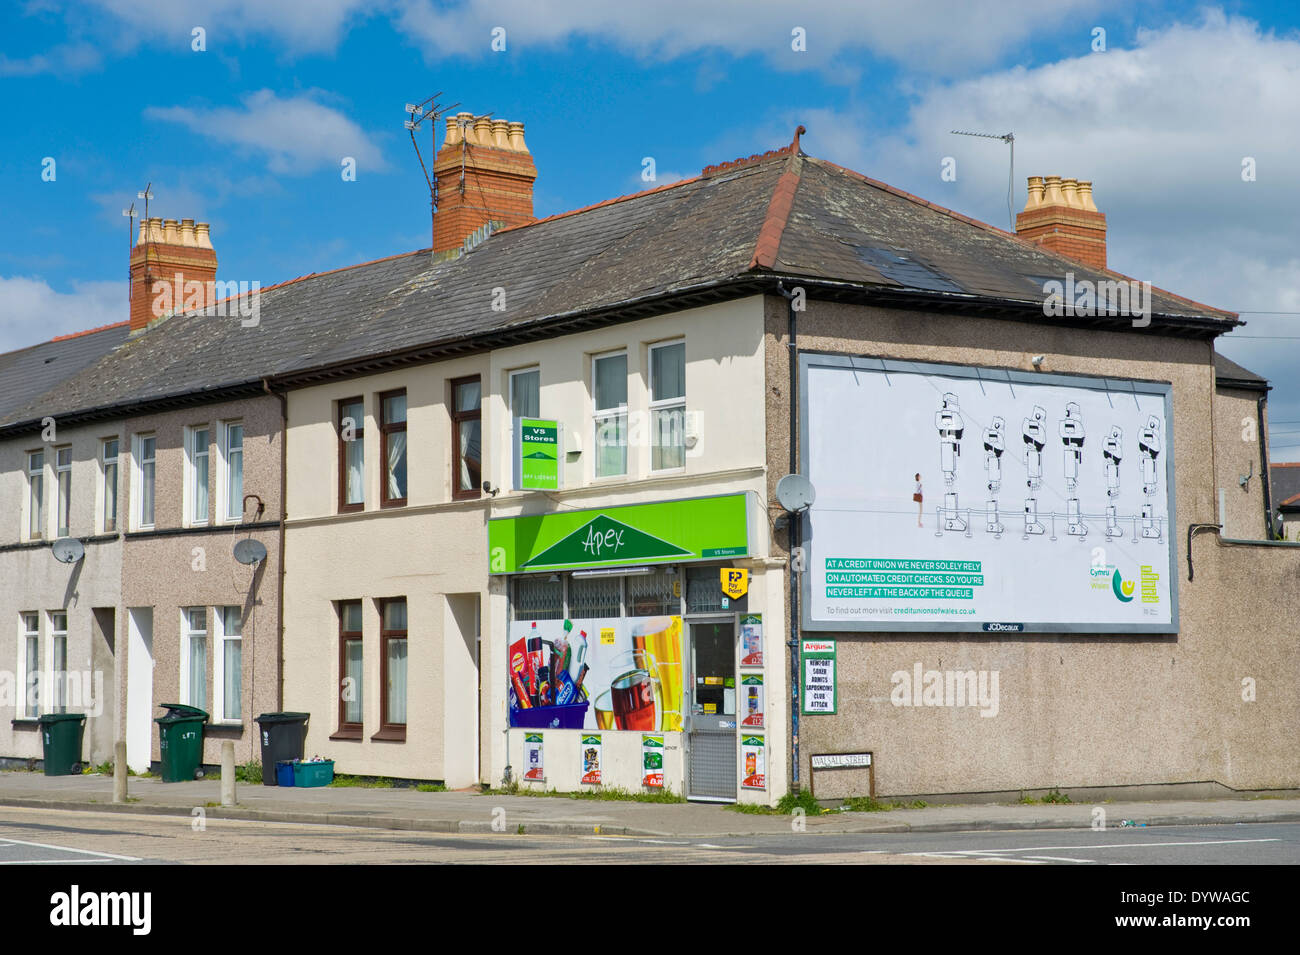 Wales Credit Unions advertising billboard on end wall of corner shop JCDecaux site in Newport South Wales UK - Stock Image